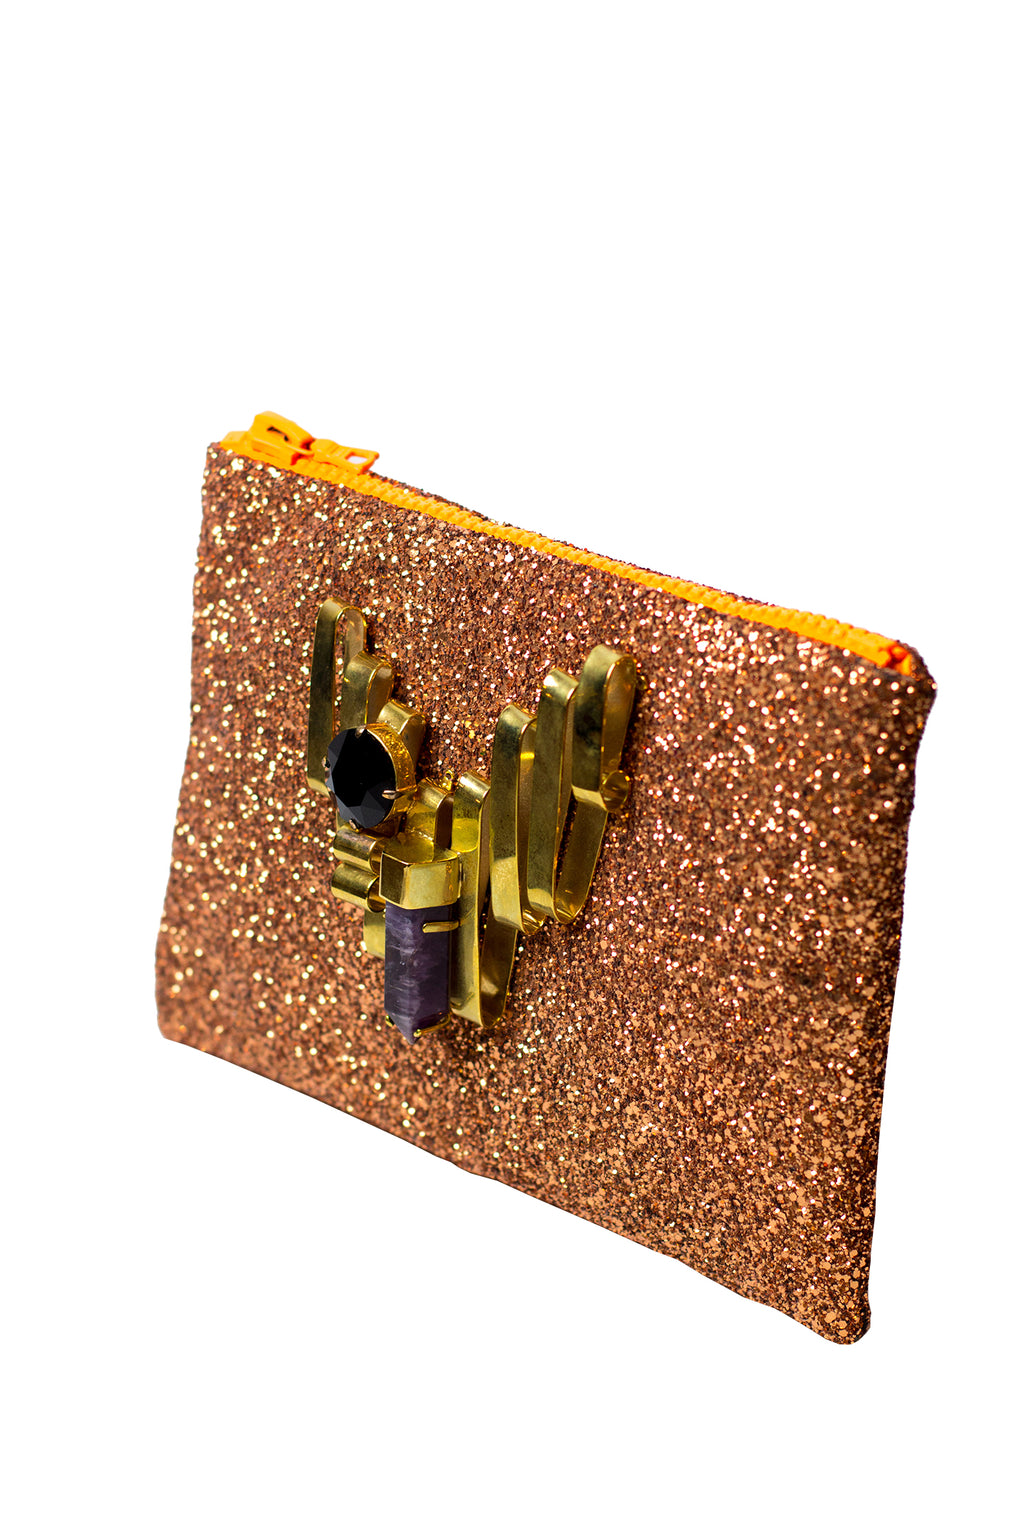 Mawi - Single glitter clutch w/metallic ribbon,amethystshard &cryst.